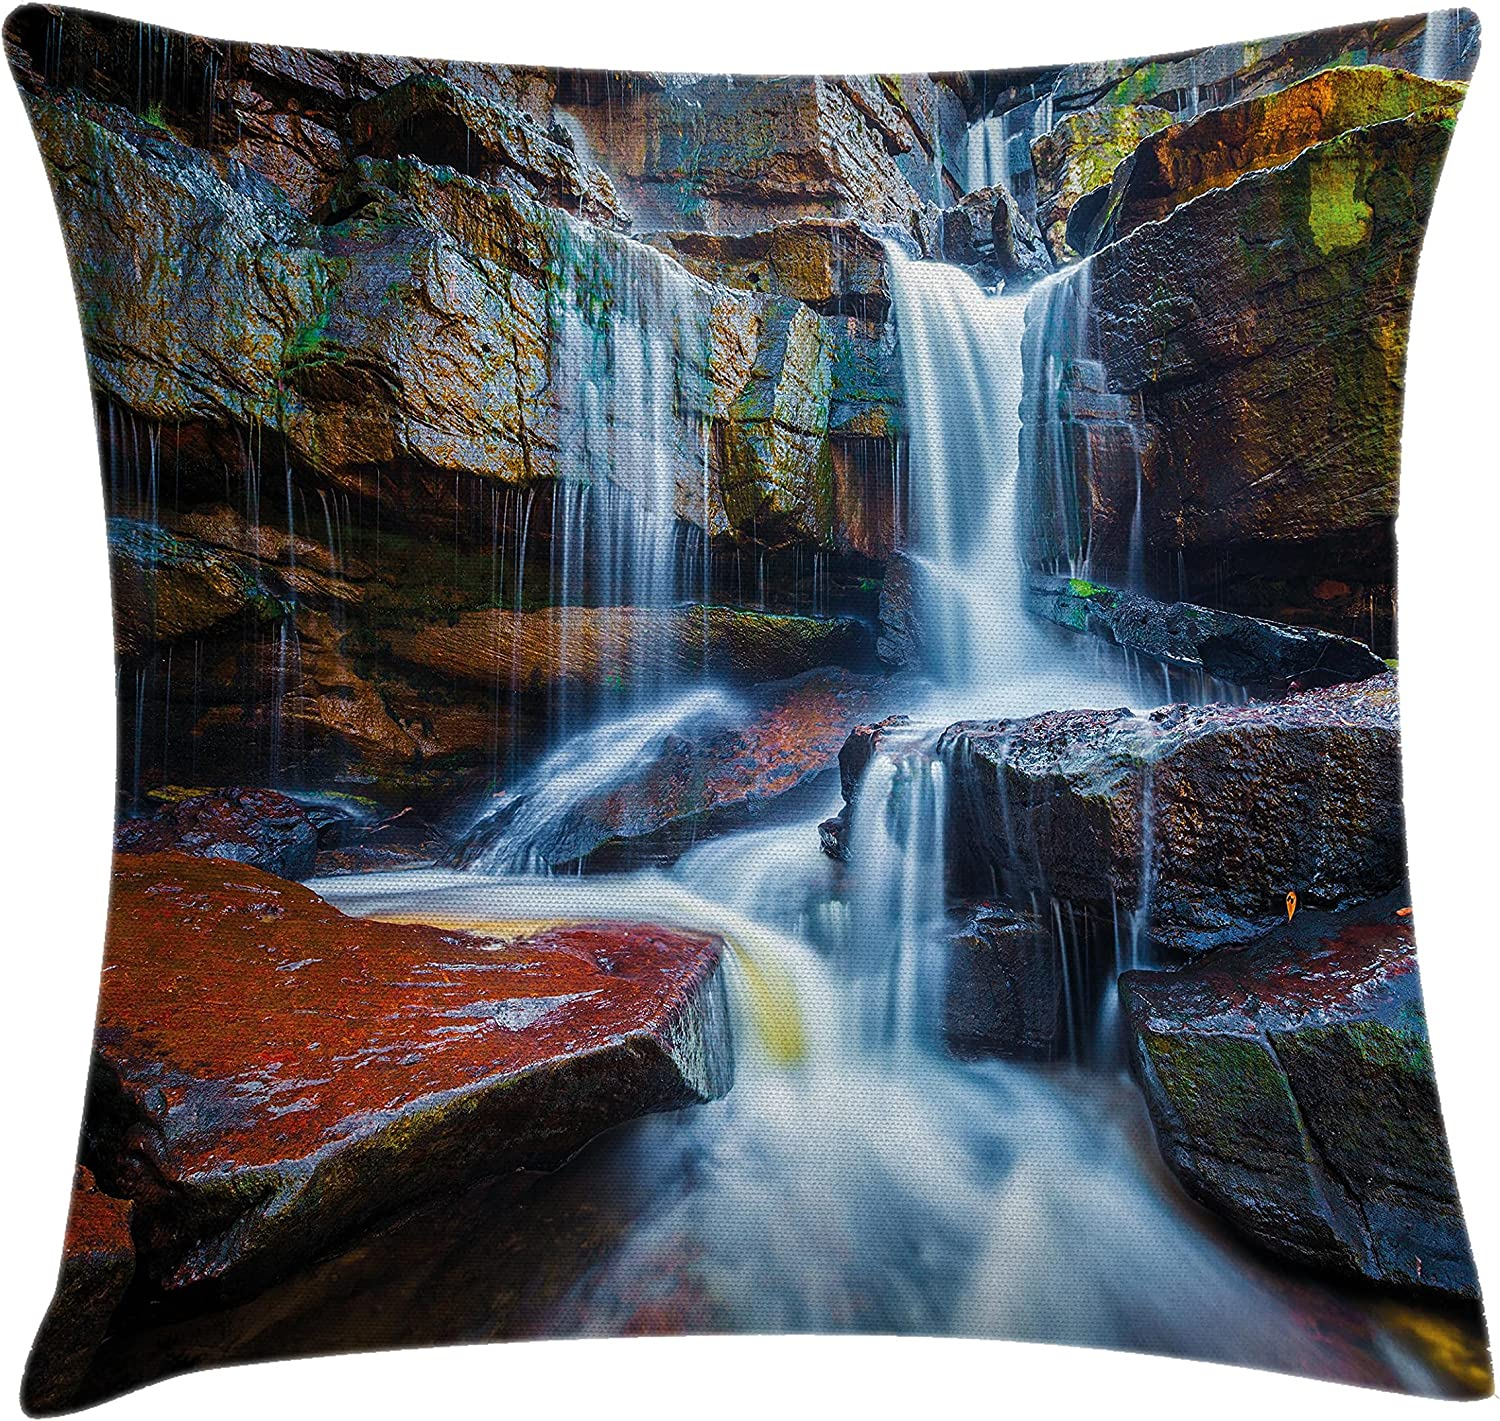 Amazon Com Ambesonne Waterfall Throw Pillow Cushion Cover Multiple Waterfalls Centered Between Rock Steps With Moss On Photography Decorative Square Accent Pillow Case 18 X 18 Brown And White Home Kitchen